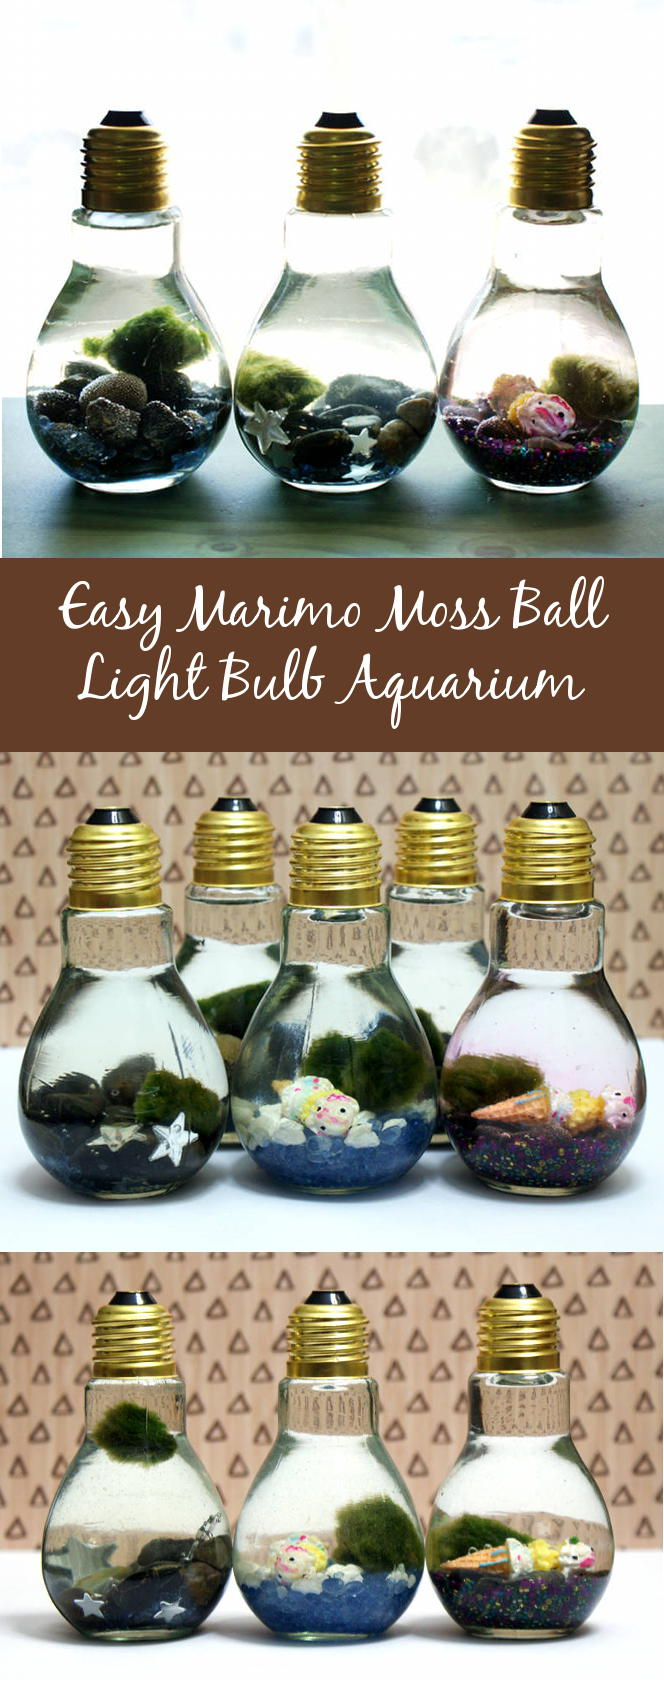 Easy diy light bulb aquarium for Home crafts to sell